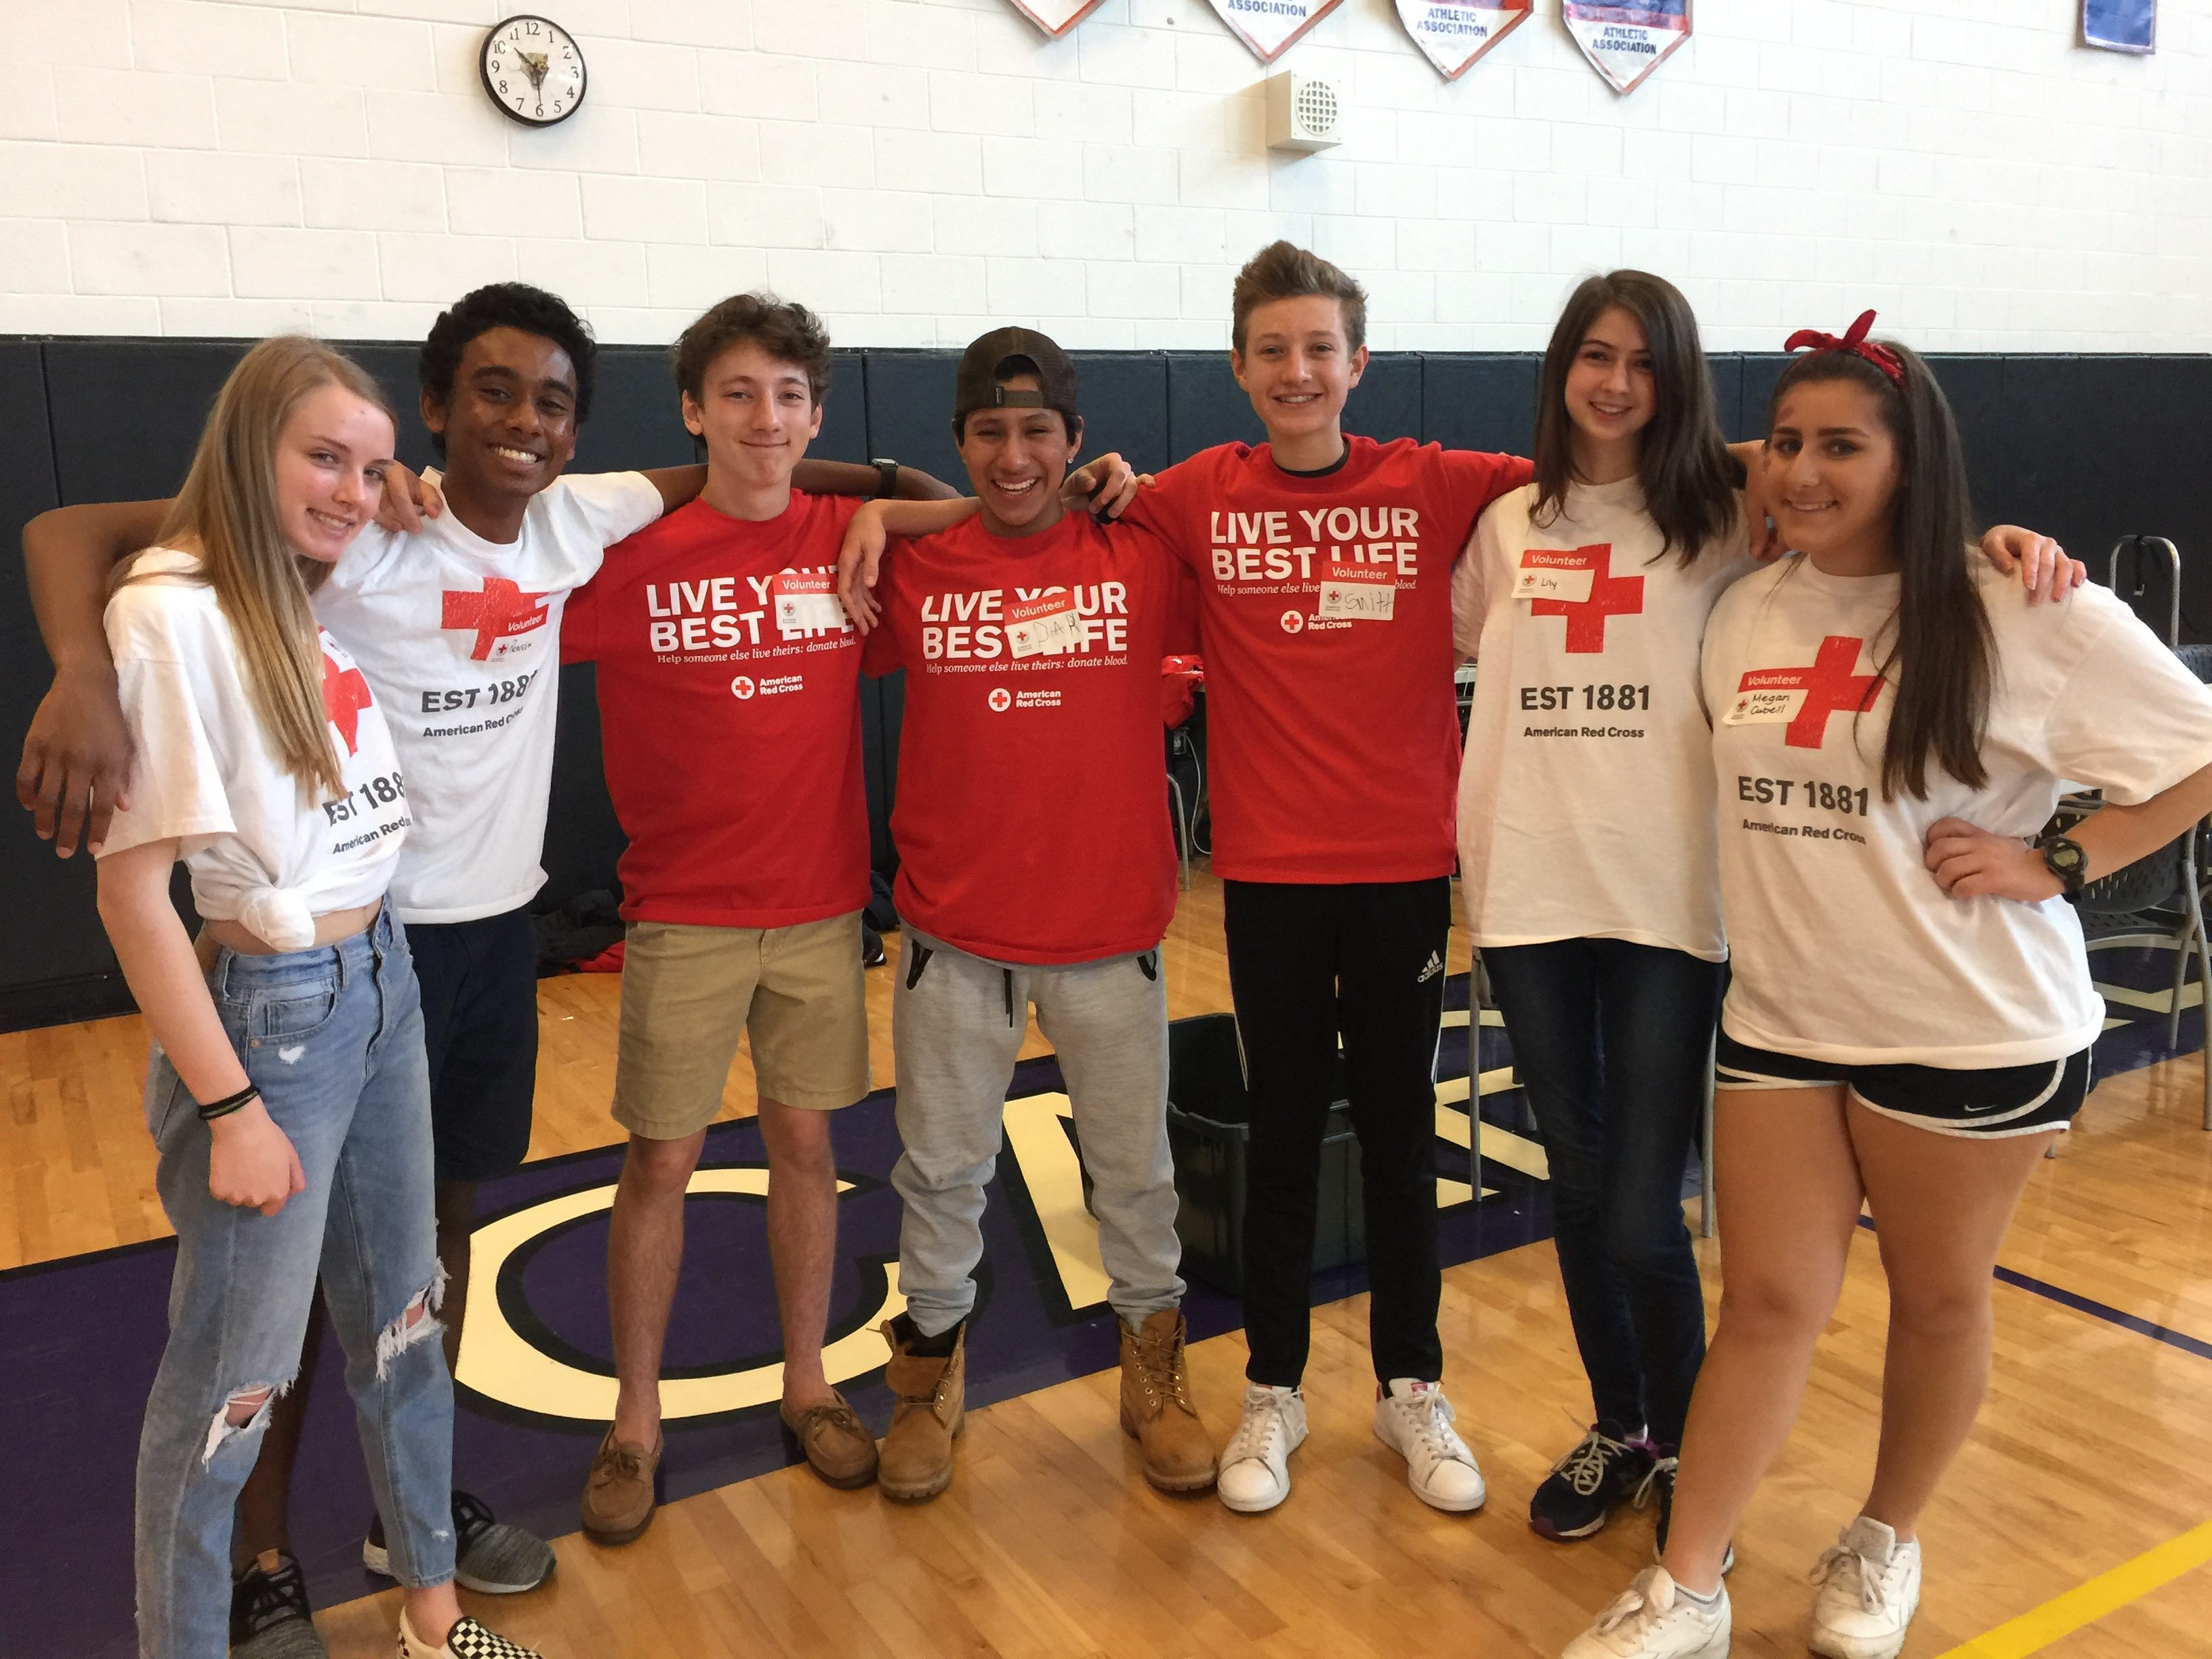 CHS' Biannual Blood Drive